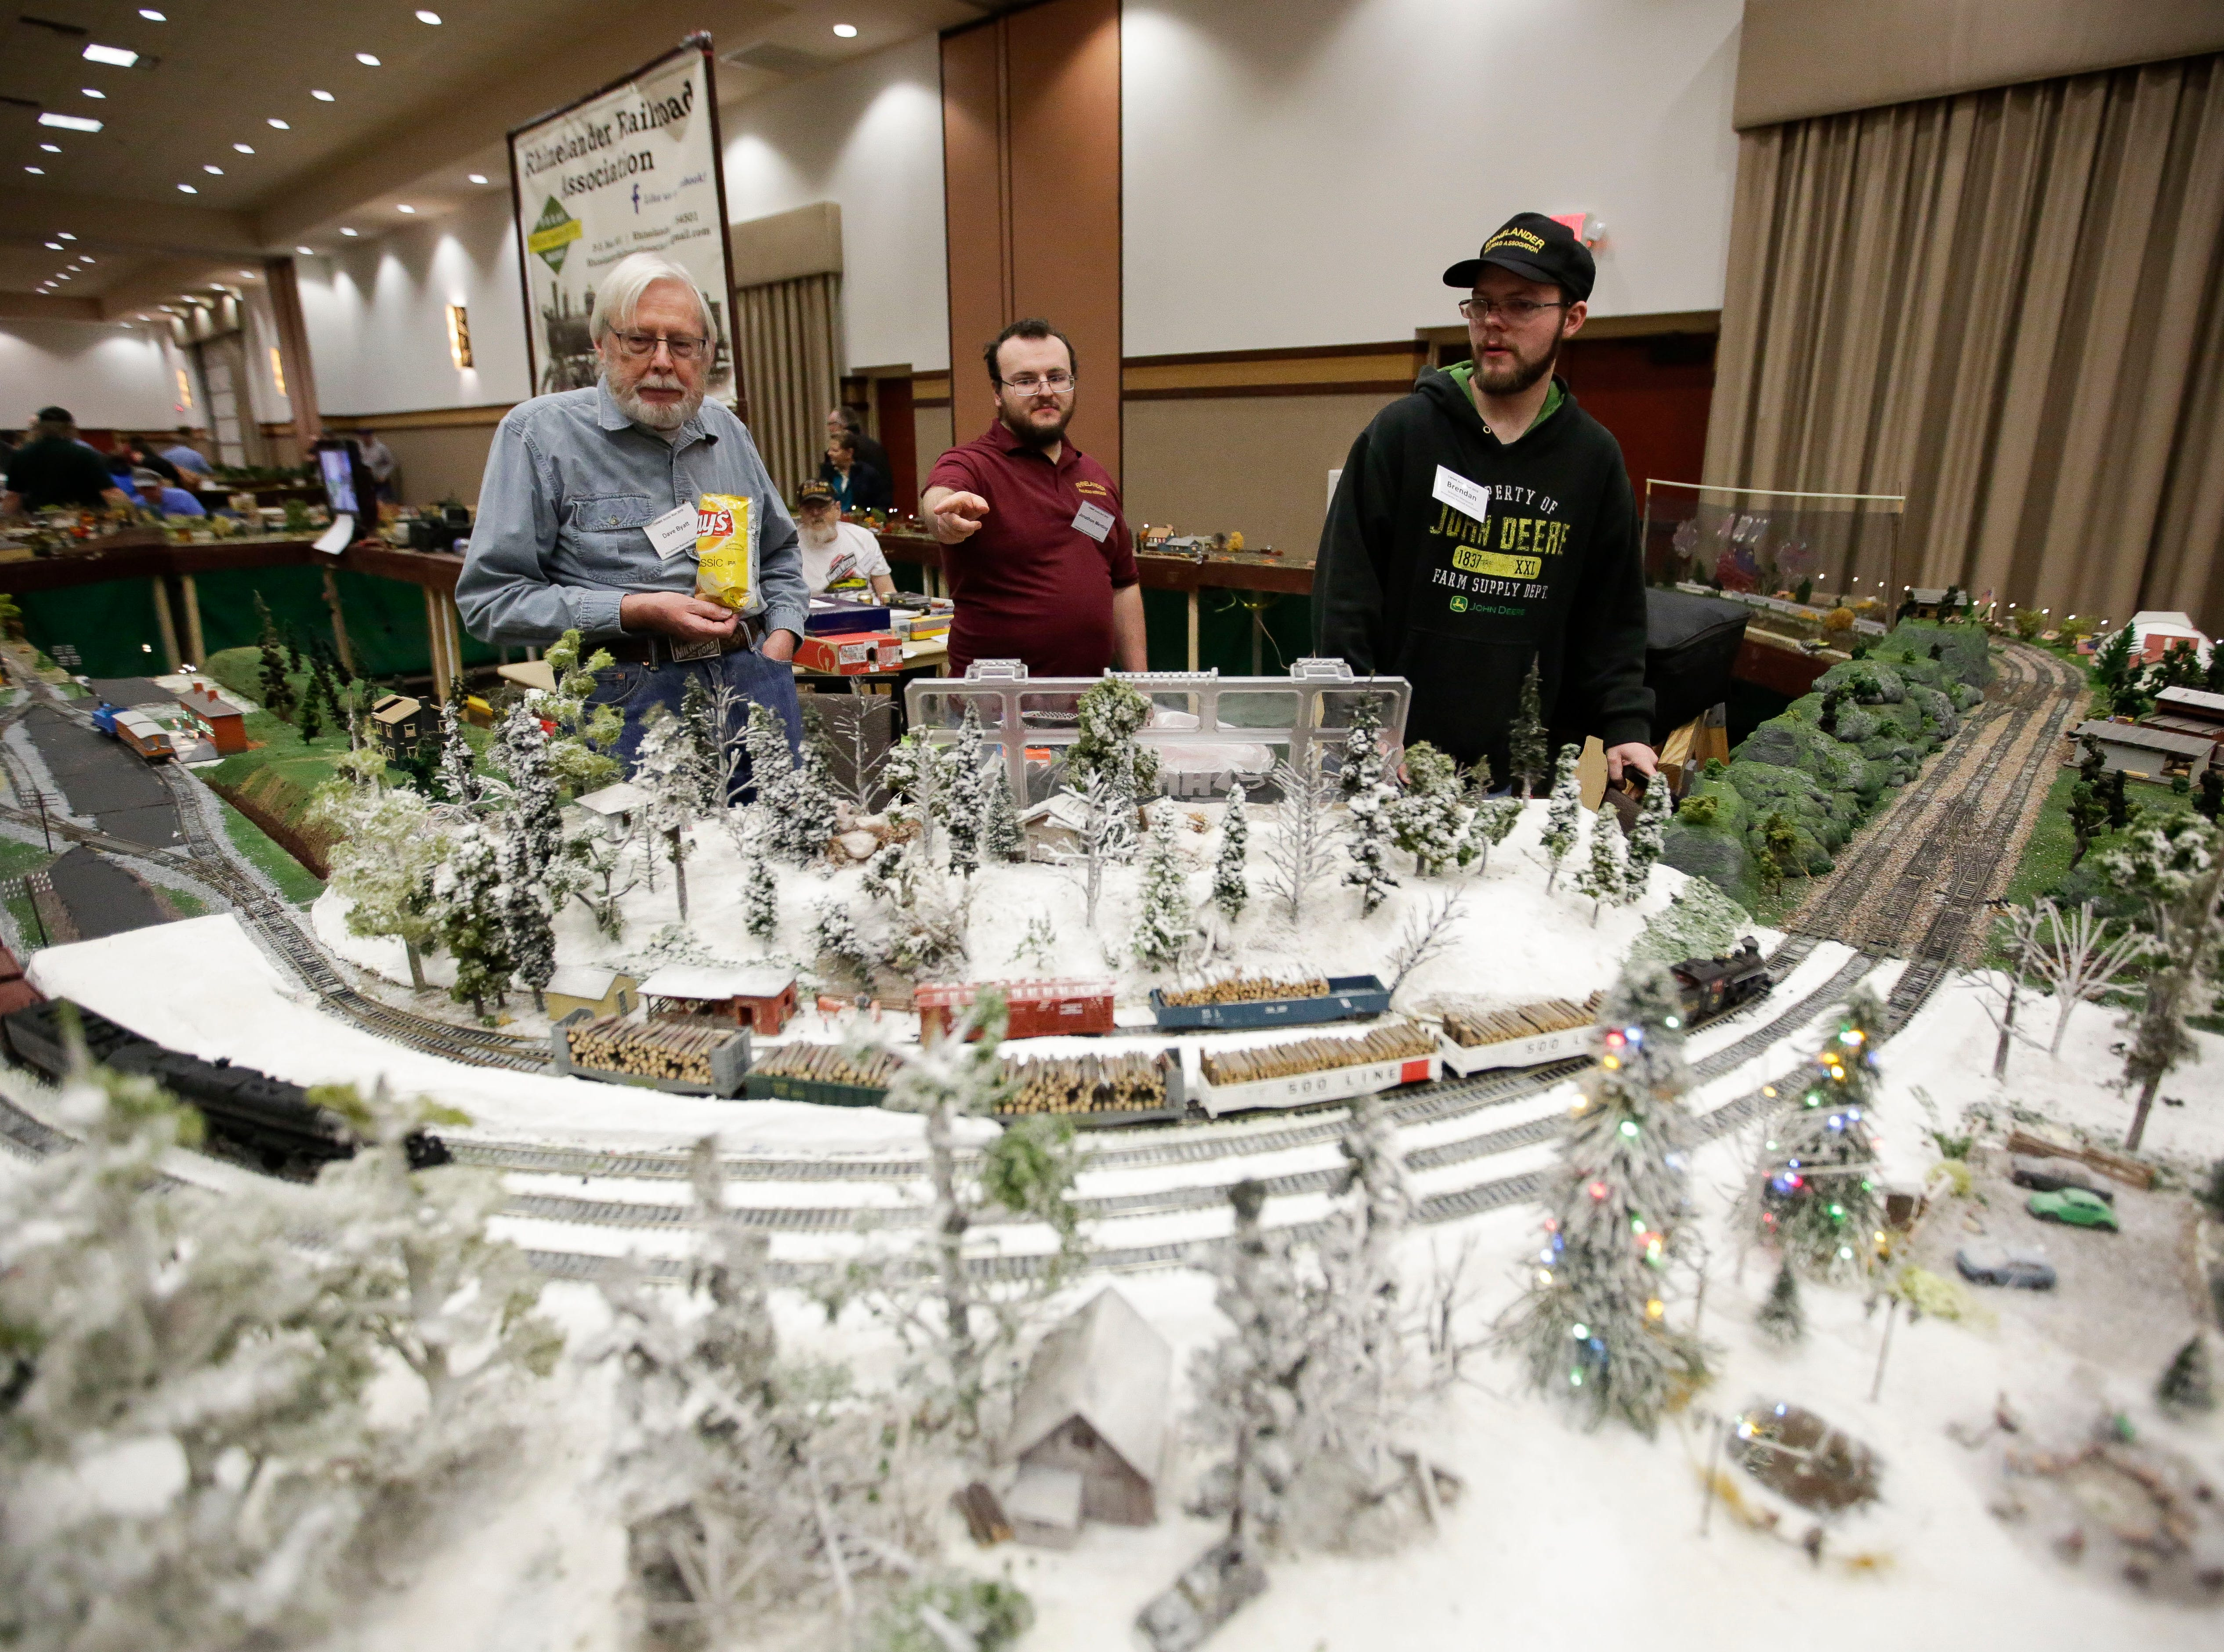 Dave Byatt, Jonathon Menting and Brendan Marquardt of the Rhinelander Railroad Association tend to their model train display on Sunday, February 3, 2019, during the Arctic Run Model Railroad Show at the Holiday Inn Convention Center in Stevens Point, Wis.Tork Mason/USA TODAY NETWORK-Wisconsin